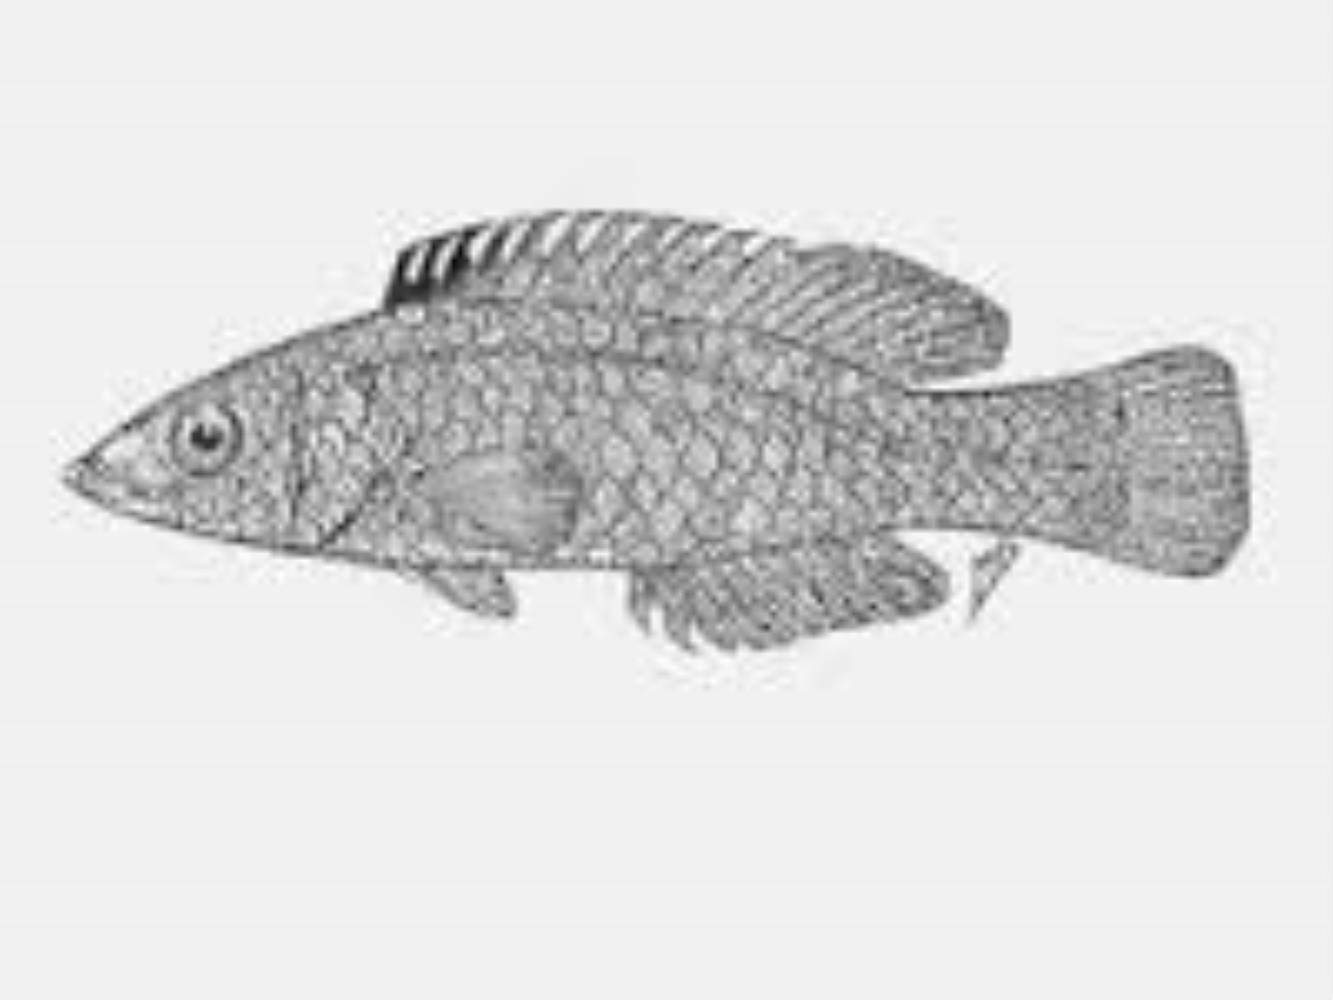 Largescale Wrasse